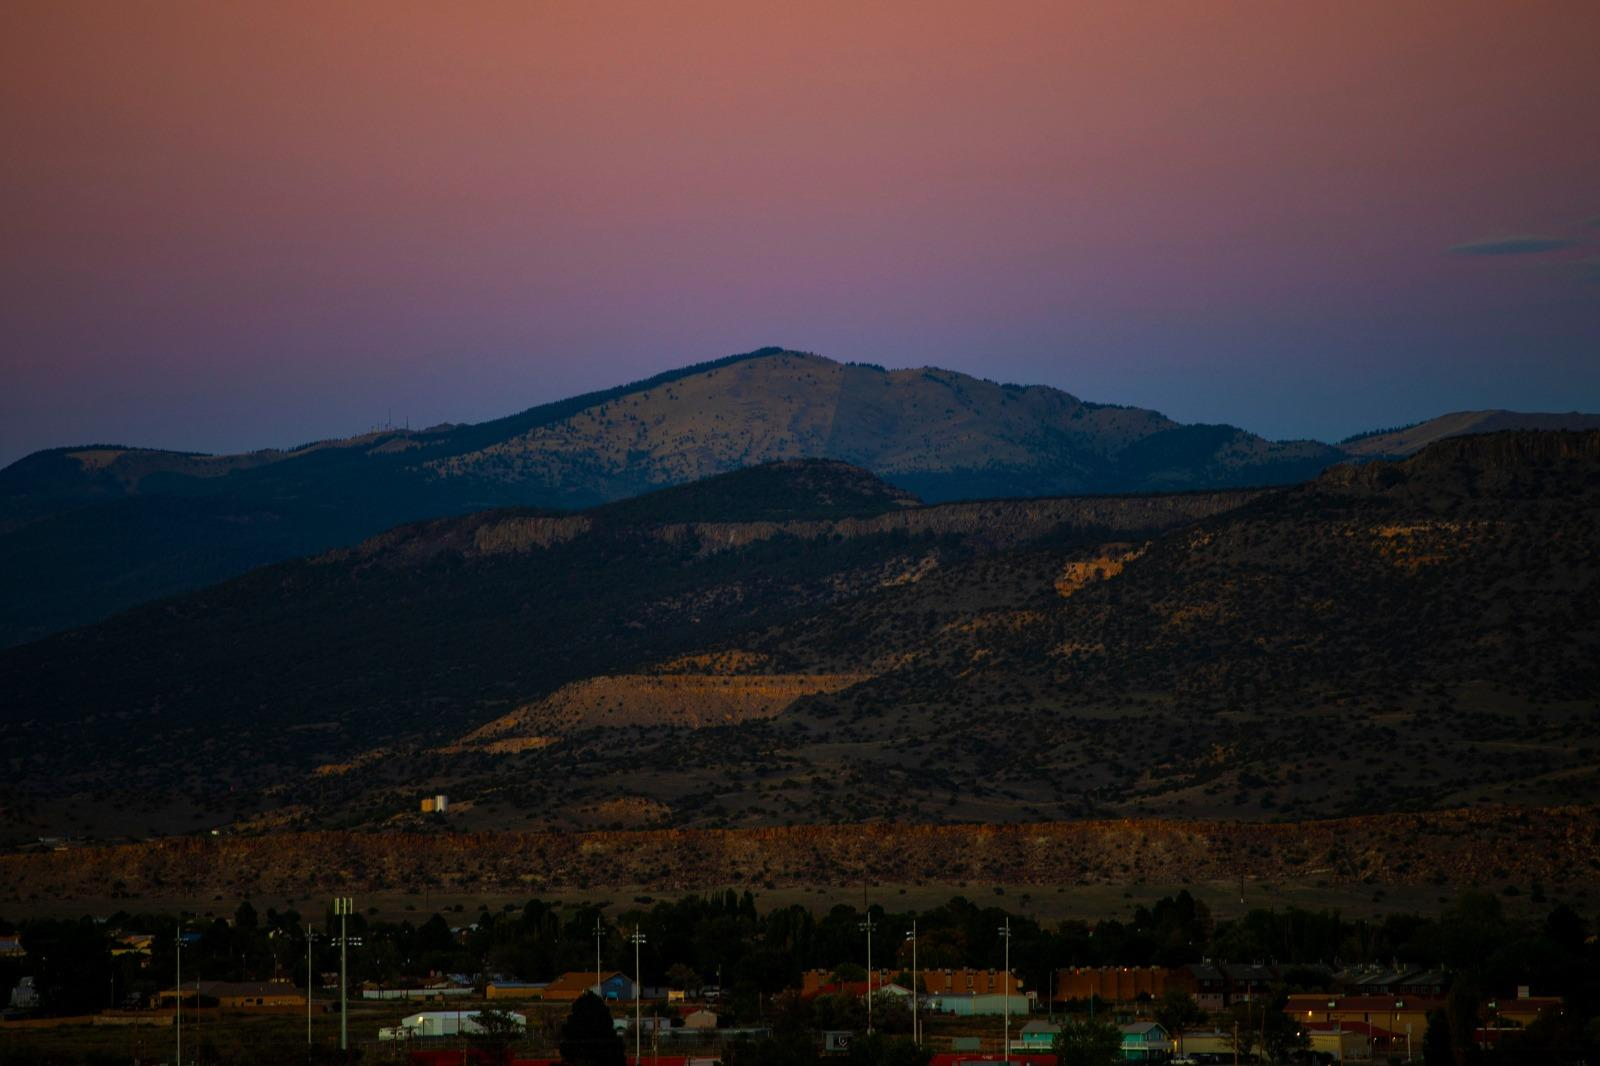 Grants, New Mexico - view